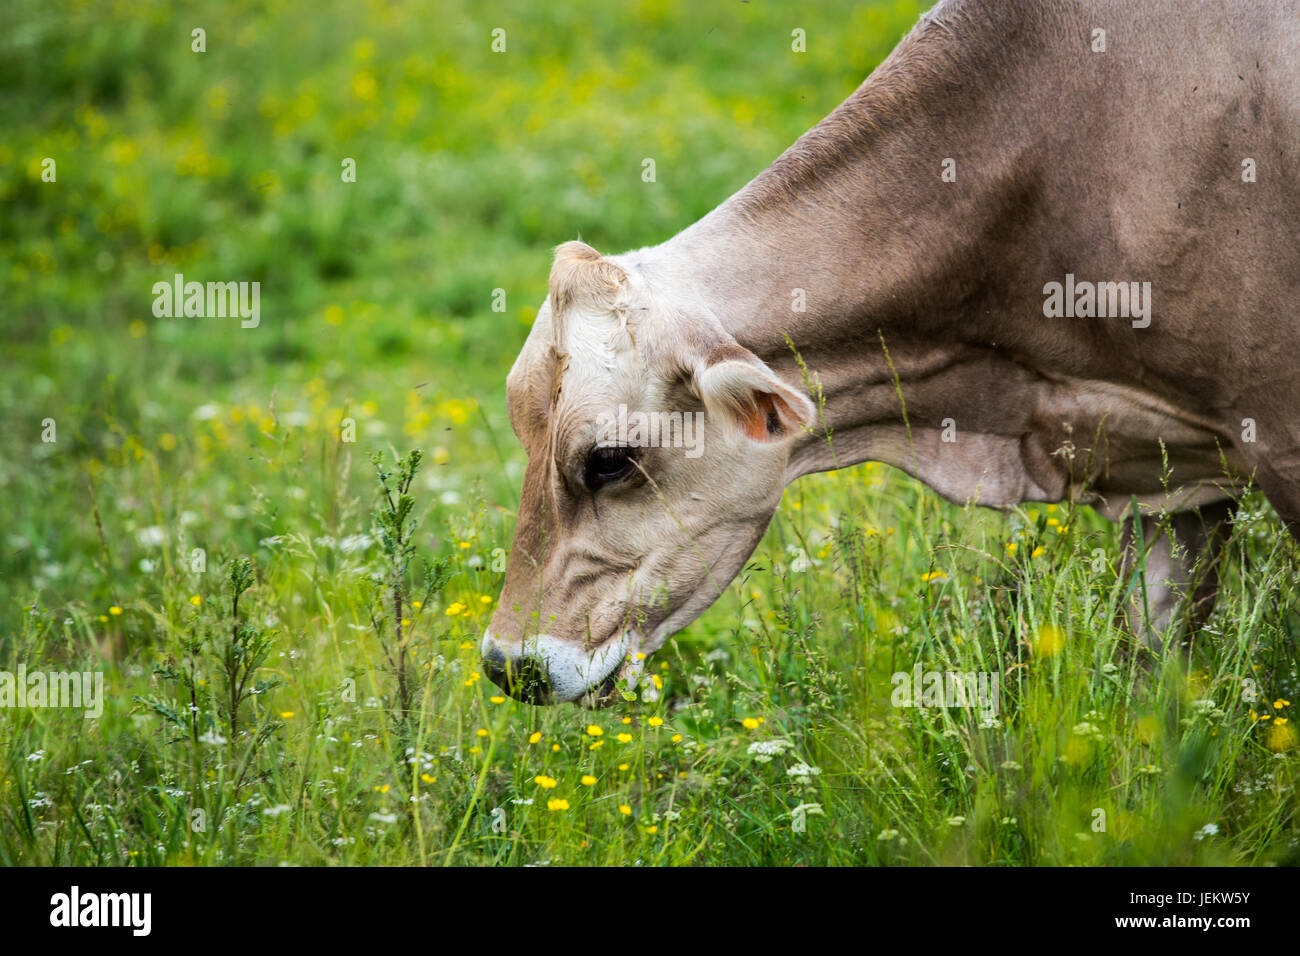 Cow (Swiss Braunvieh breed) grazing on a green meadow. Cow's face. - Stock Image